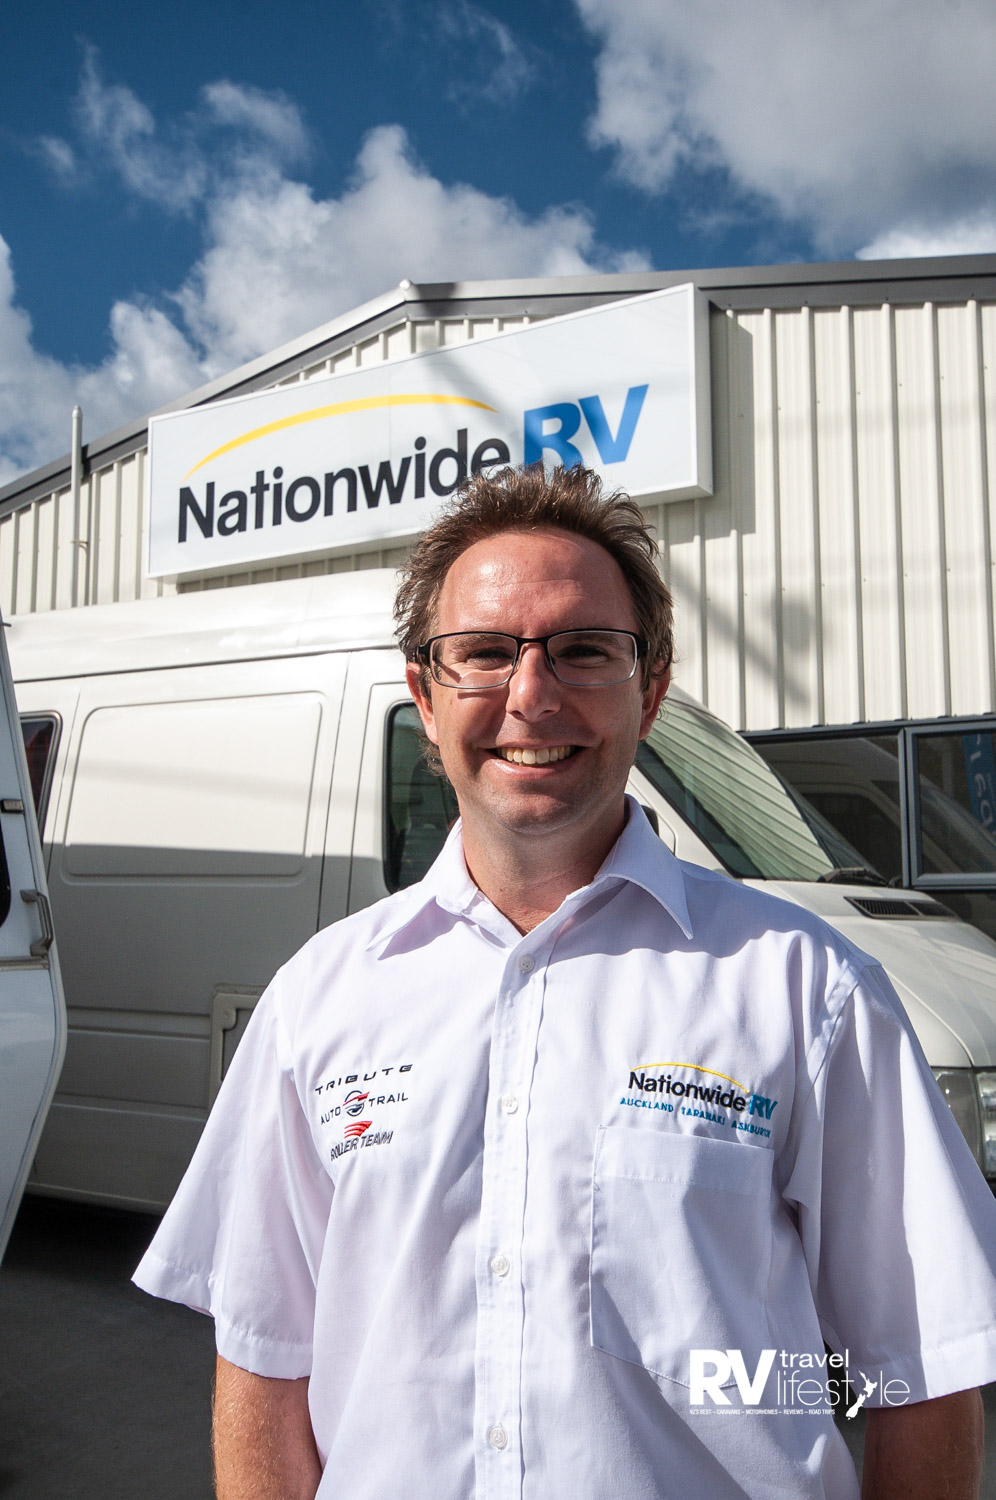 Ben Young, Sales Manager at Nationwide RV in Silverdale